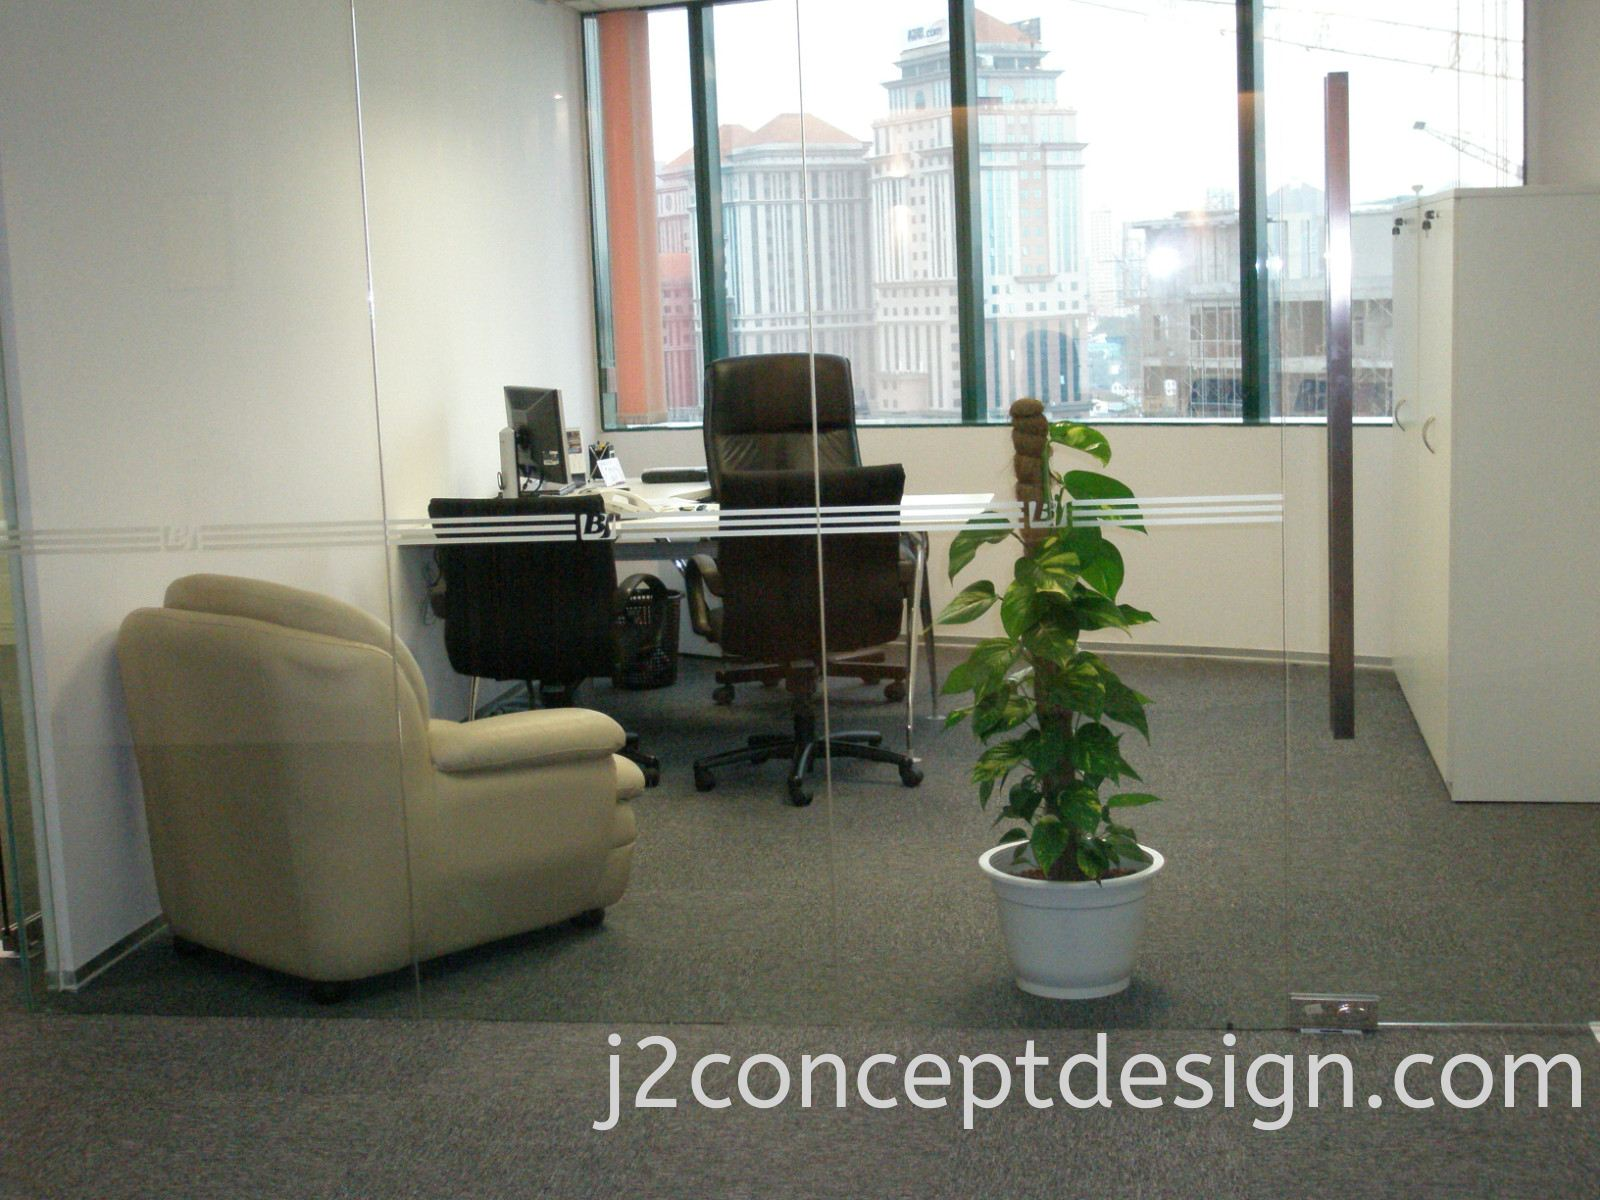 Interior Design & Office Design Malaysia @ Engineer Room View 2